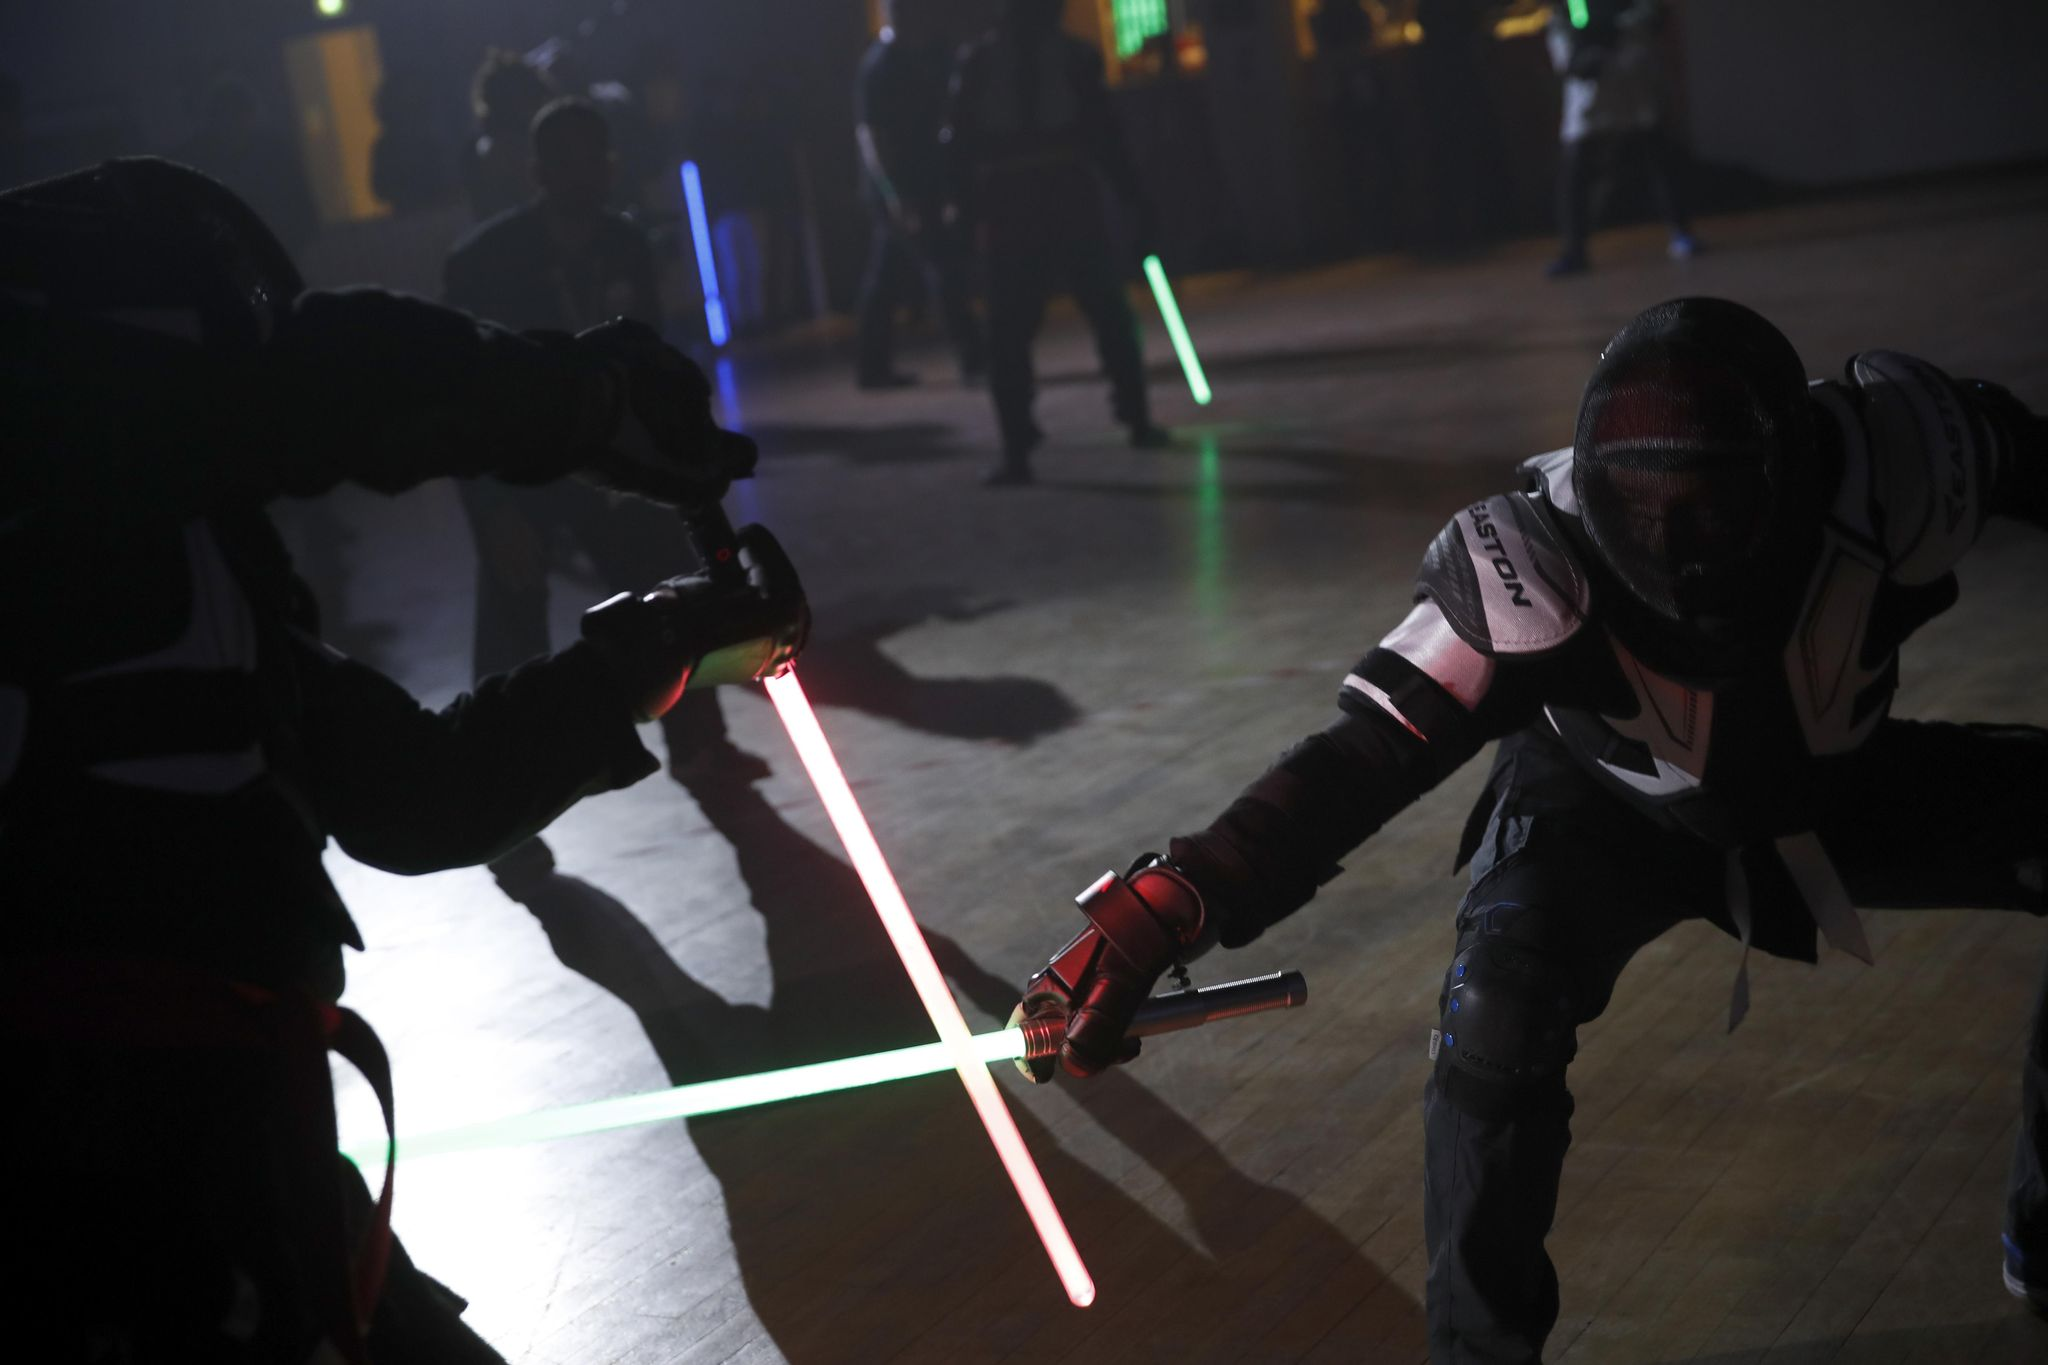 France recognizes lightsaber dueling as a sport